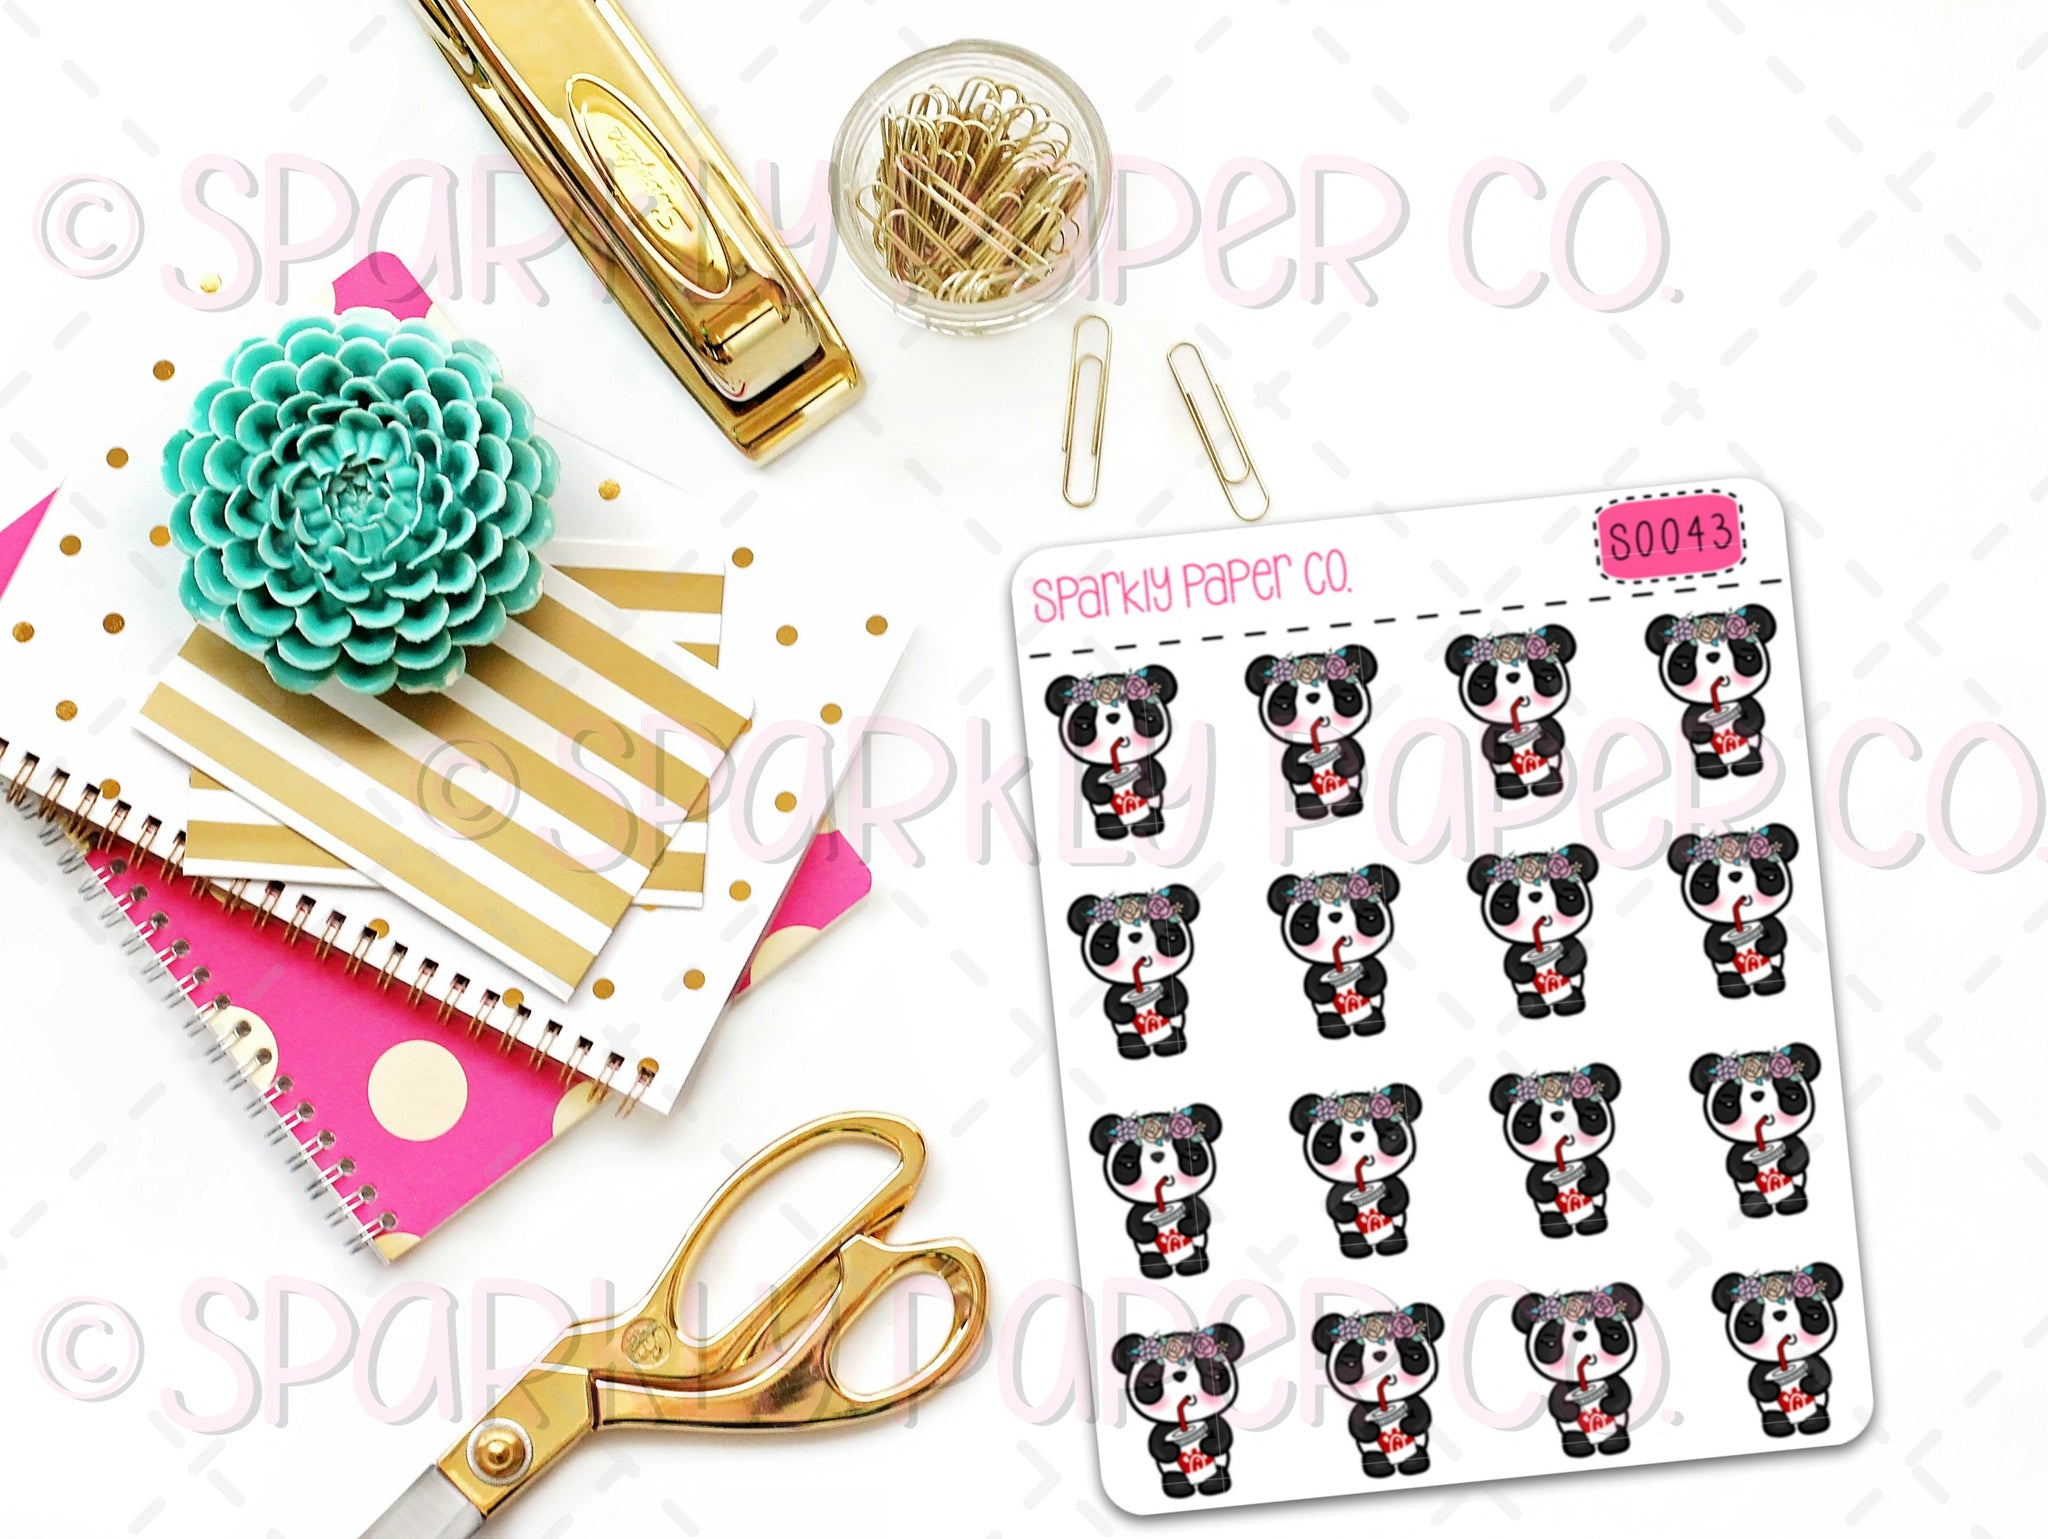 Patty Chick Fil A Planner Stickers (matte removable) S0043